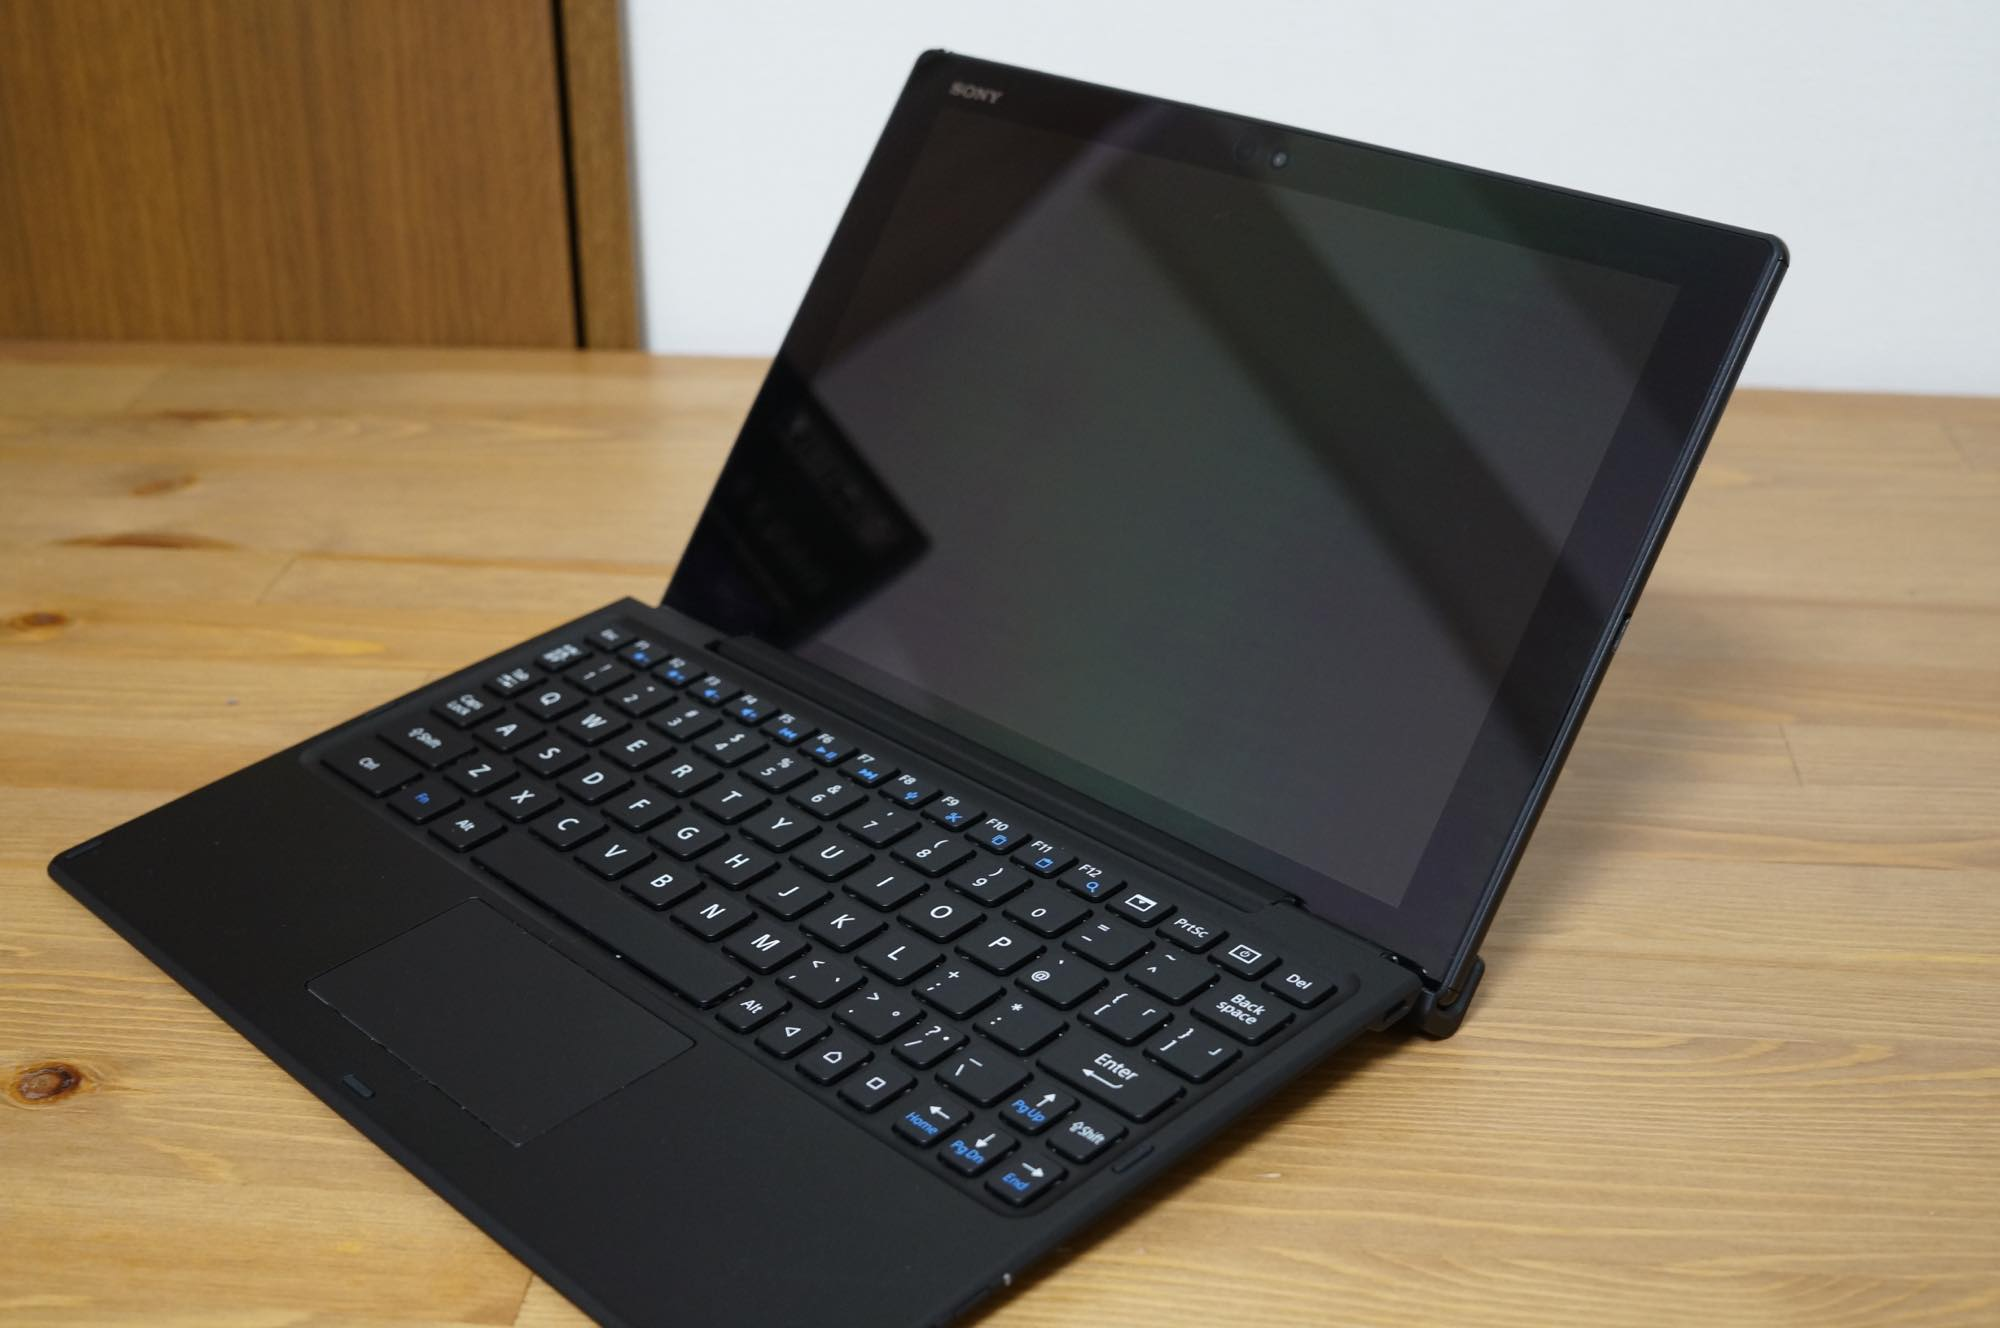 Xperia-Z4-tablet-keyboard3